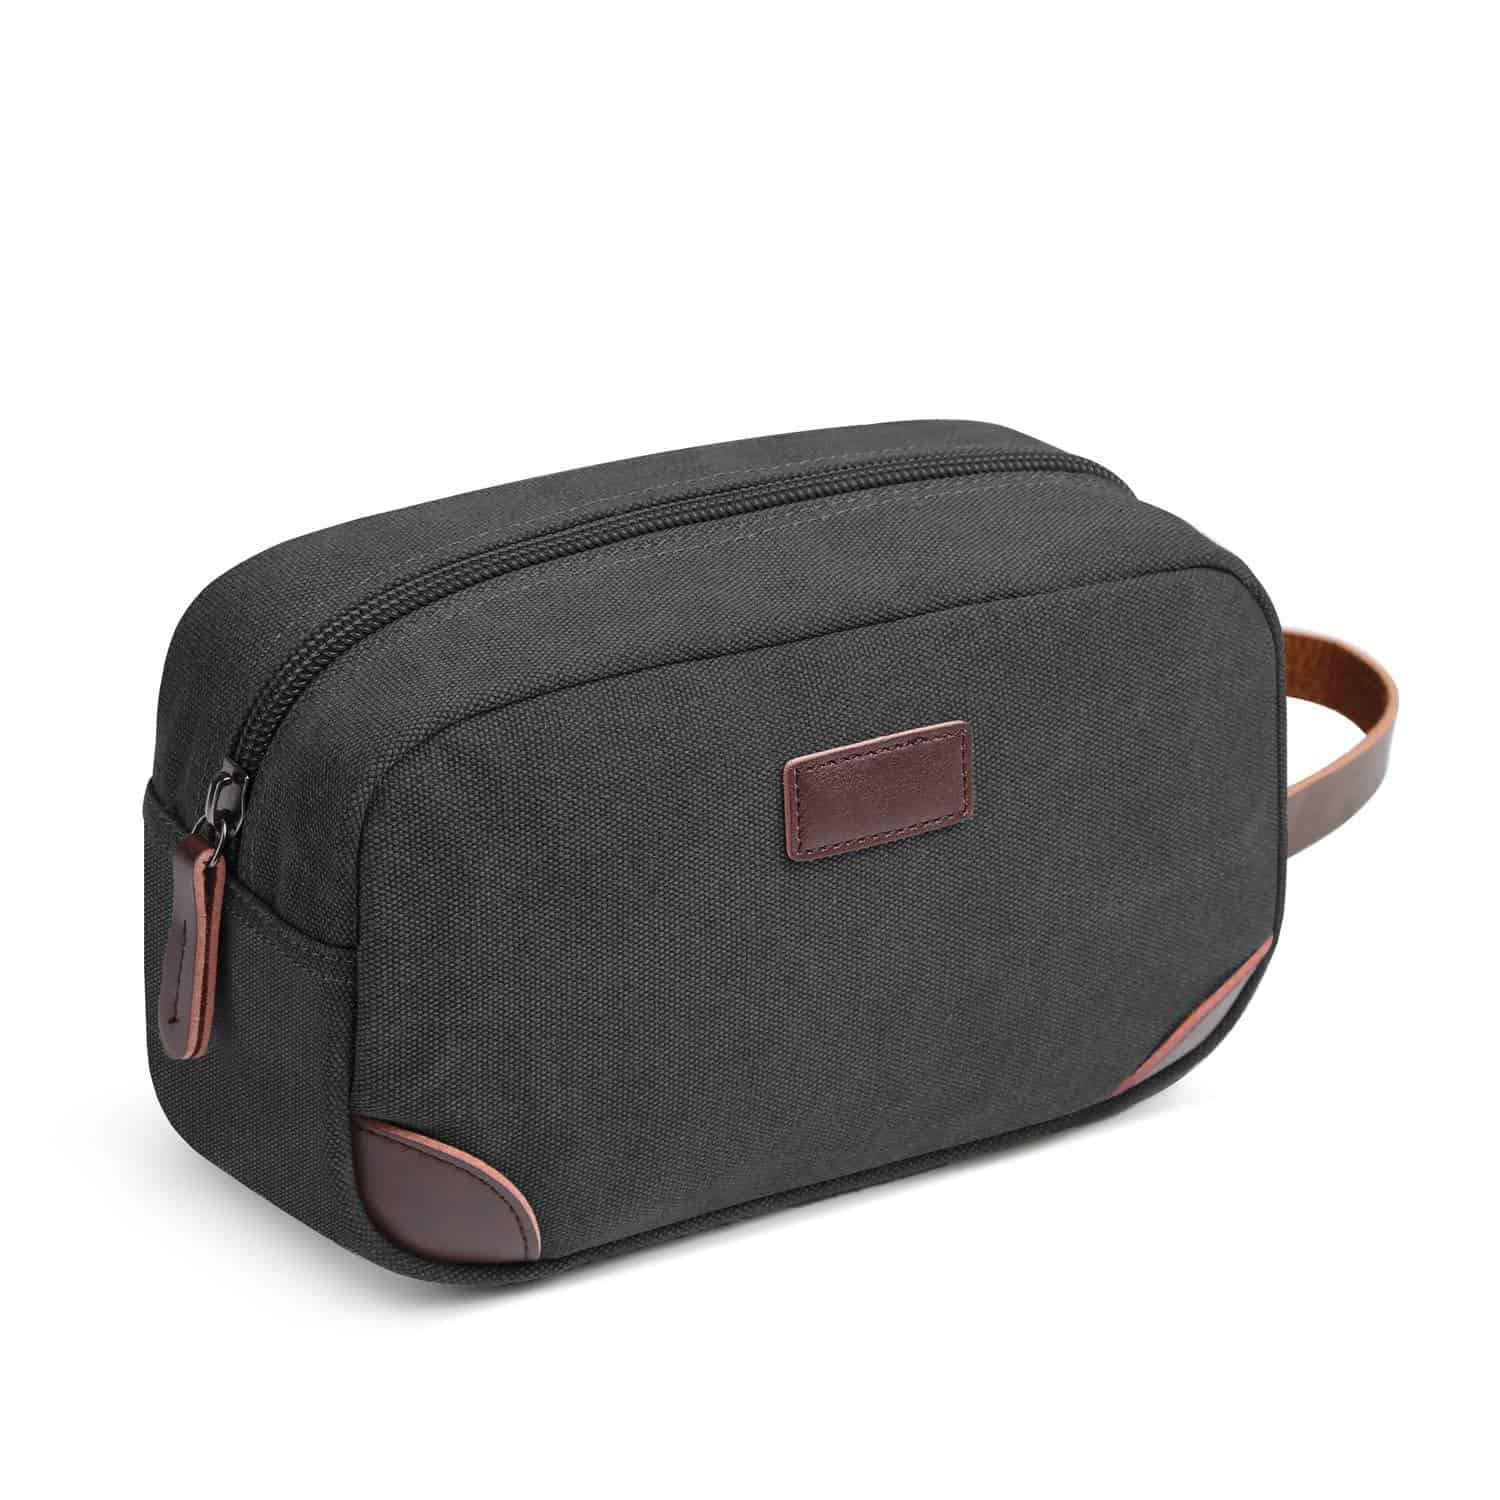 Men's Travel Toiletry Organizer Bag For Him